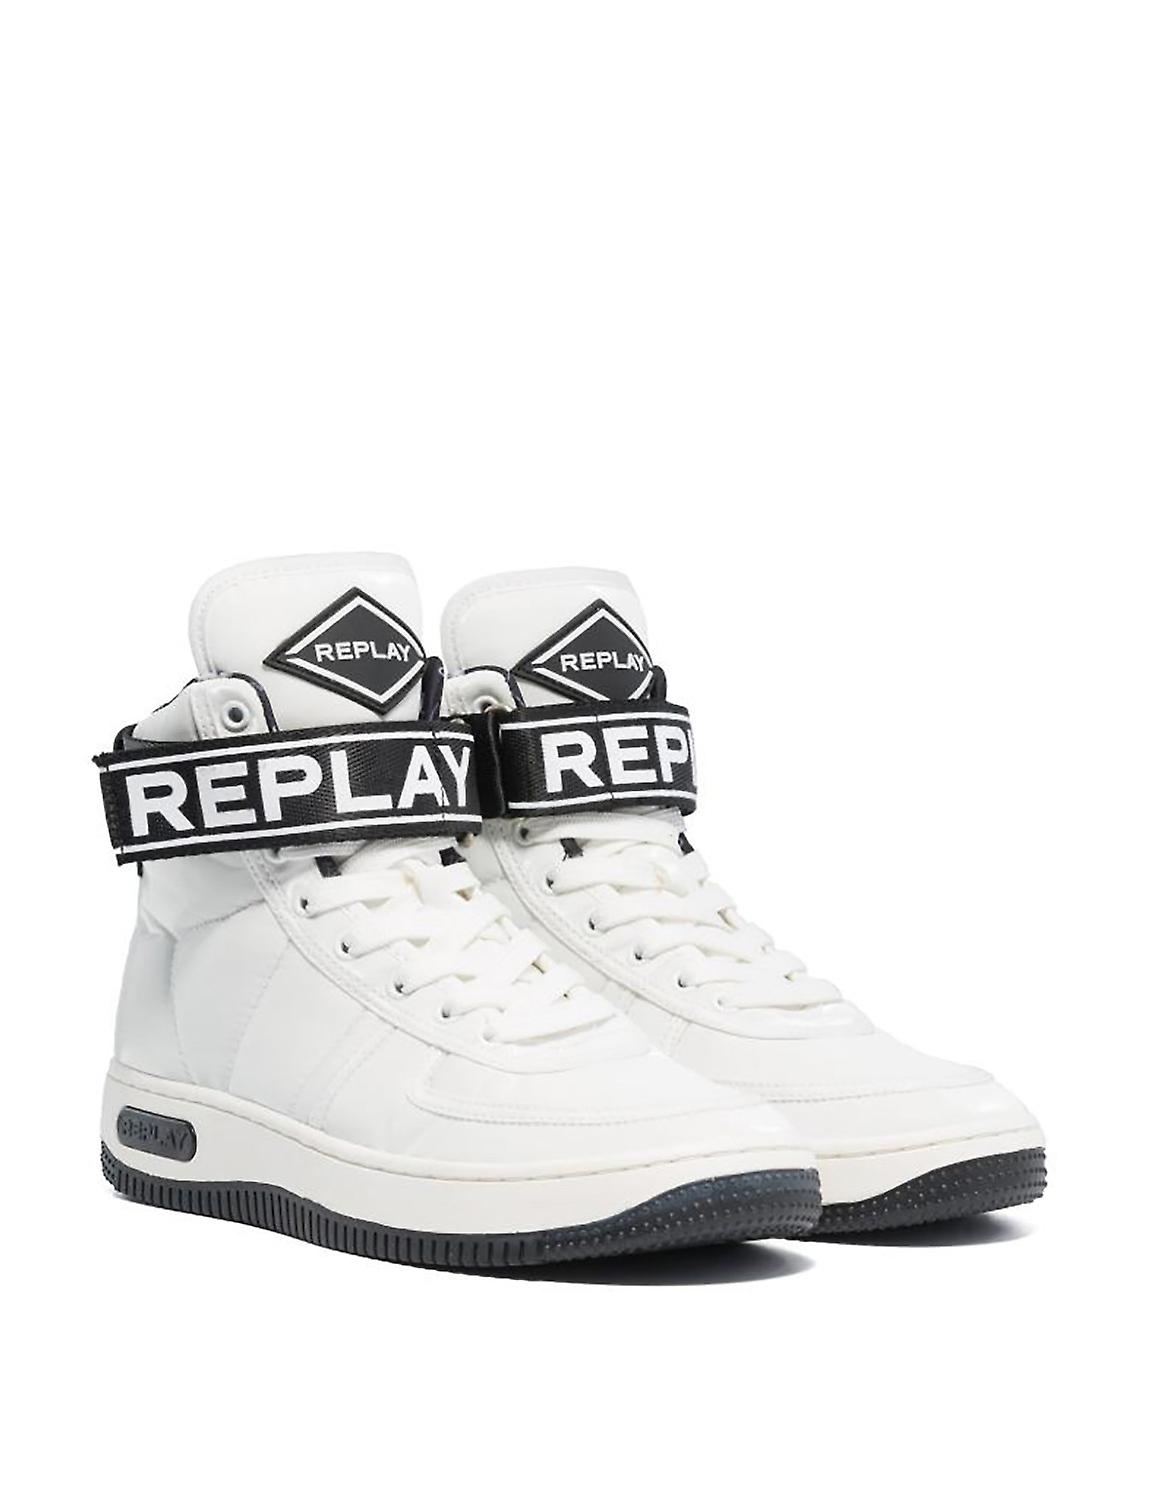 Replay Women's Lace Up Sneakers